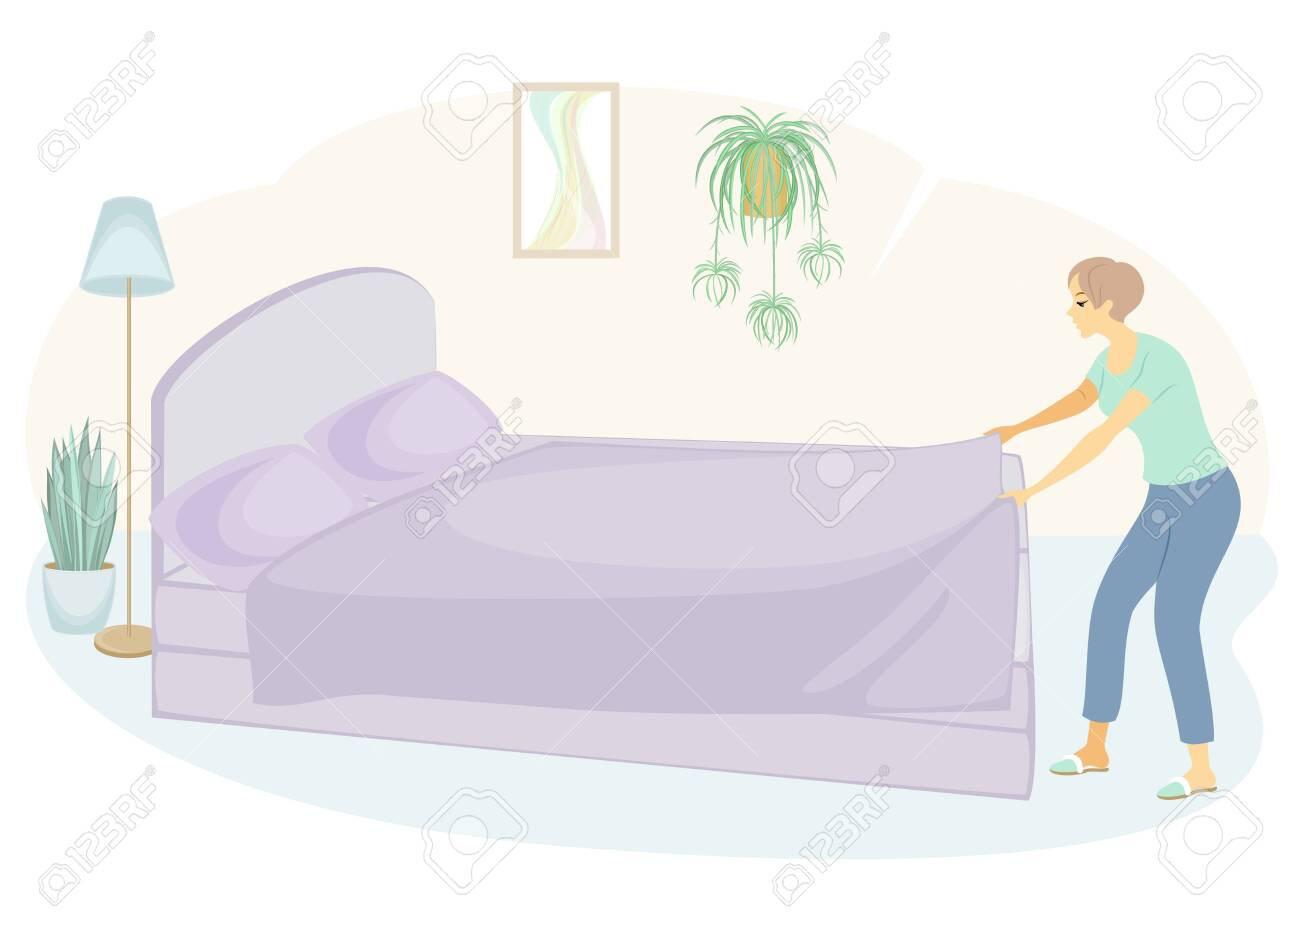 Profile of a sweet lady. The girl is making the bed in the room. A woman is a good wife and a neat housewife. Vector illustration - 148673040